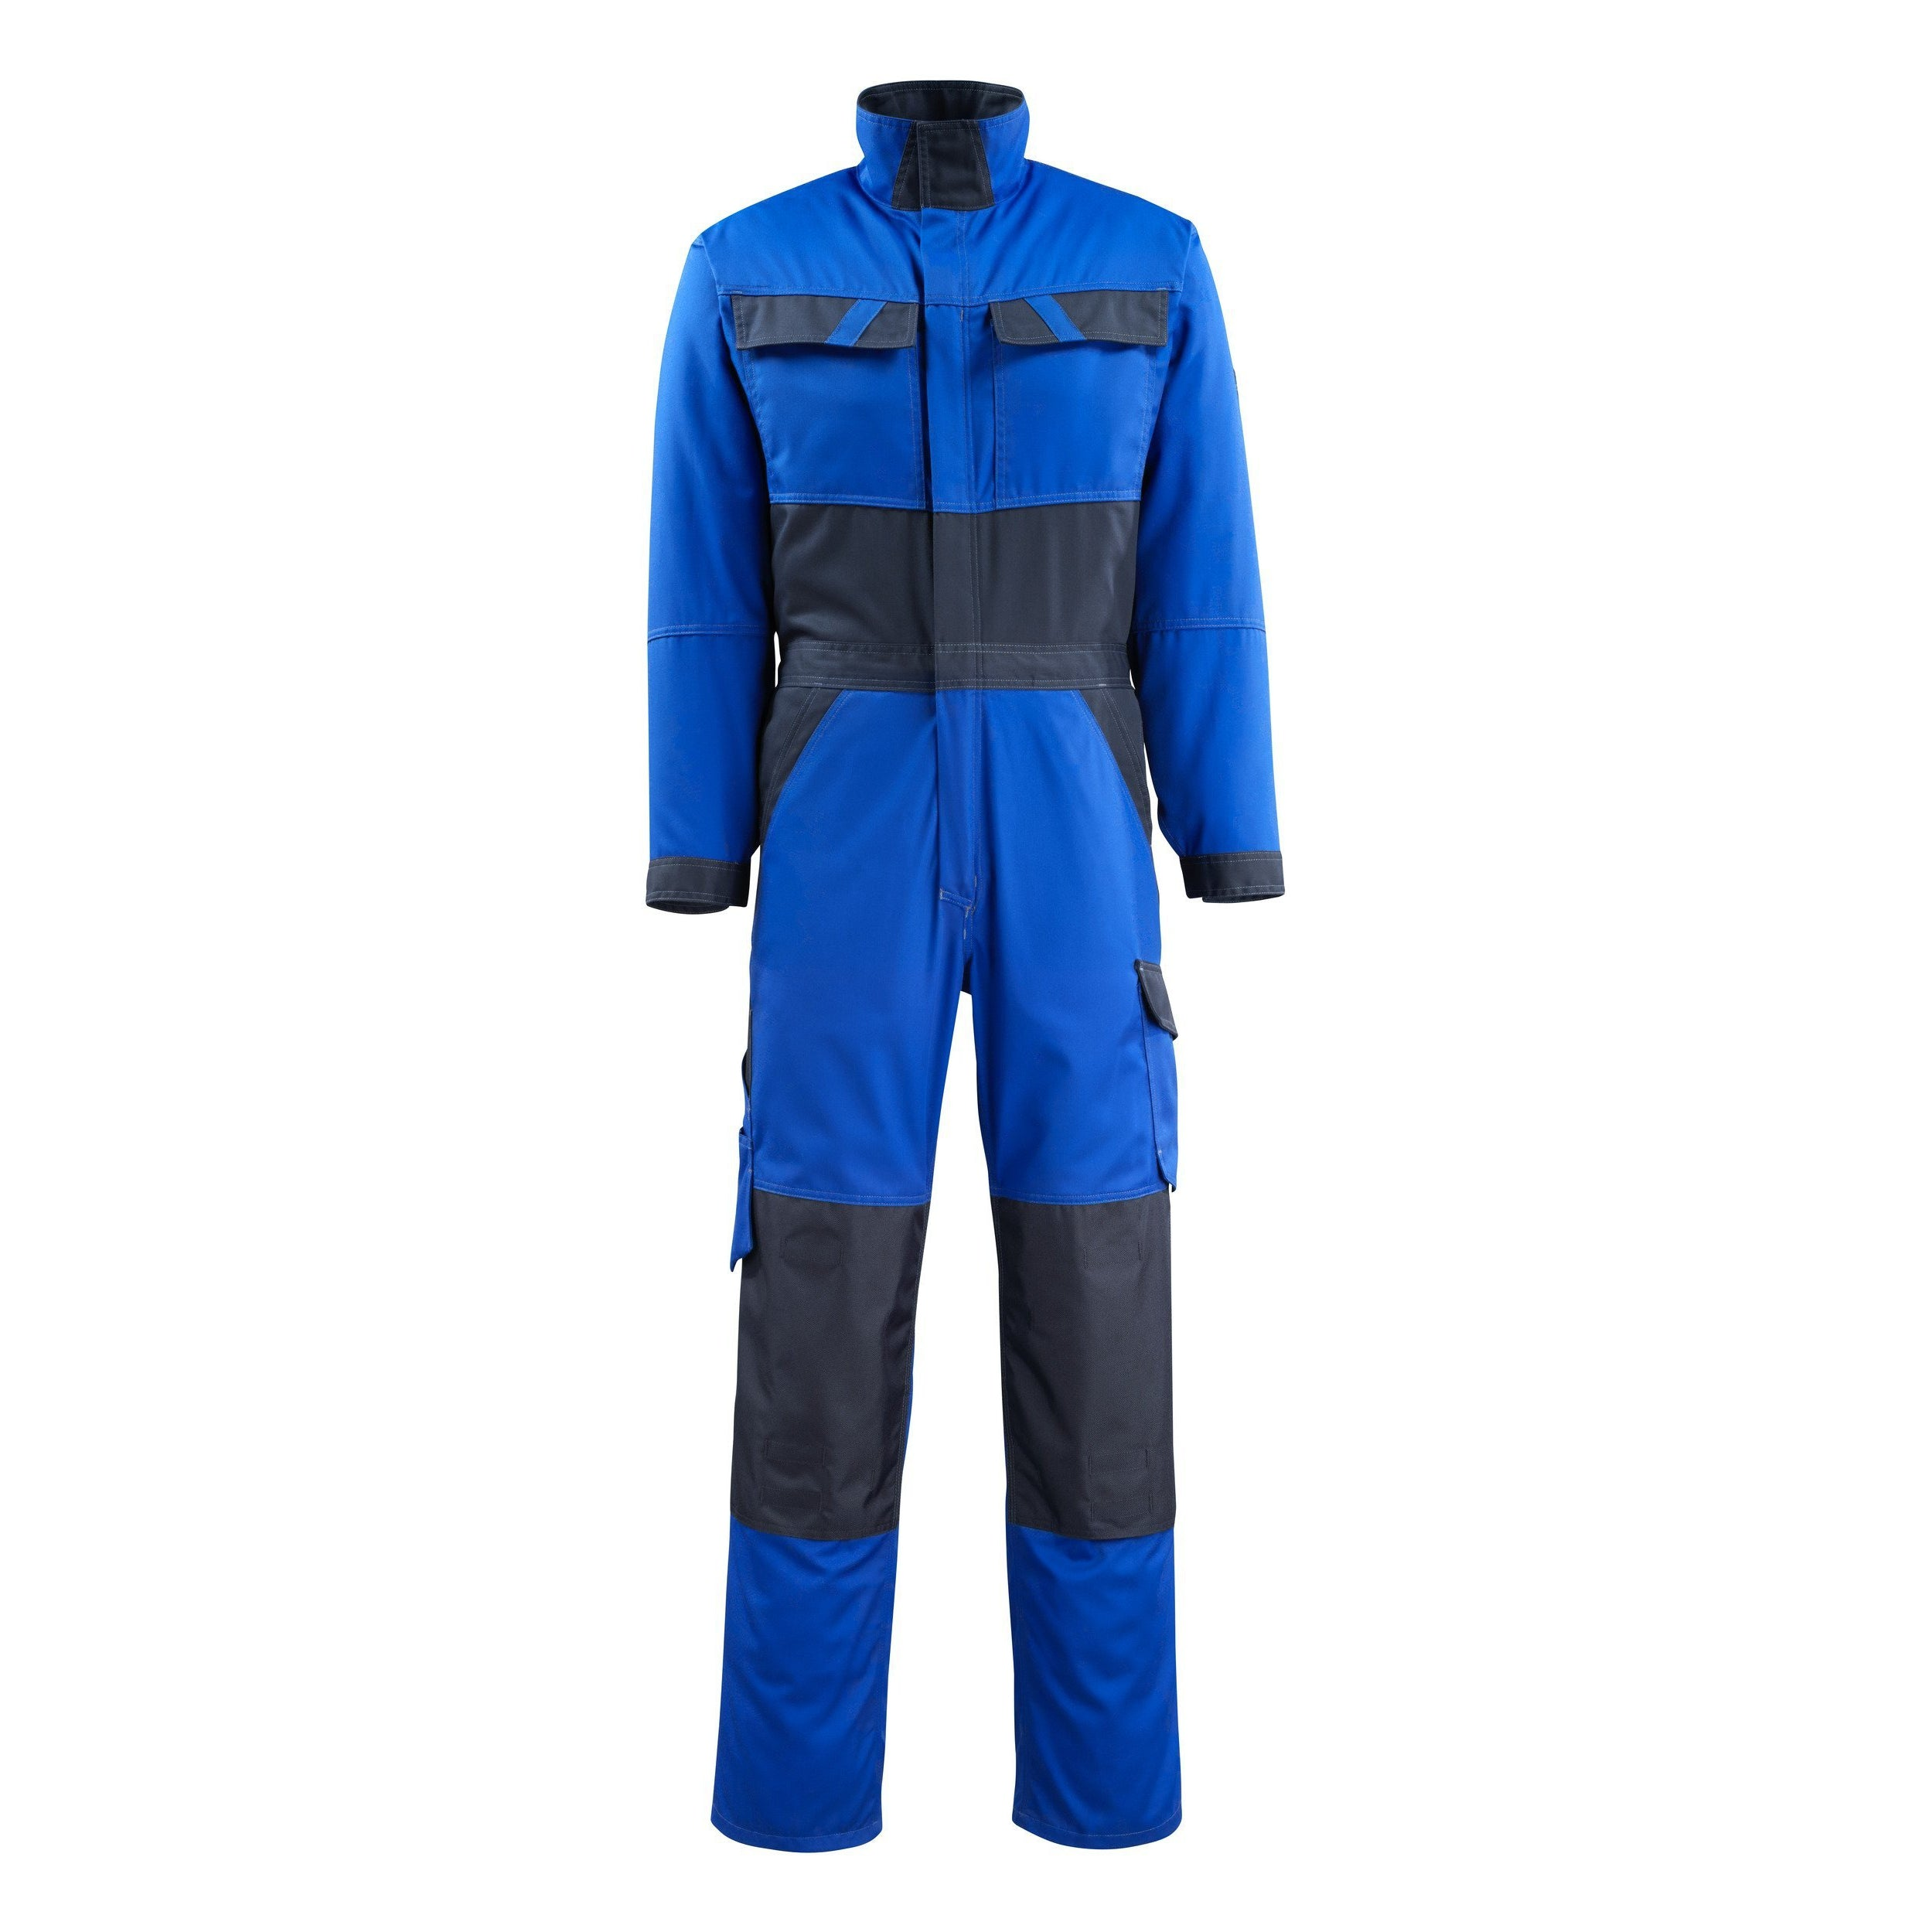 Mascot Wallan Light Boilersuit With Kneepad Pockets